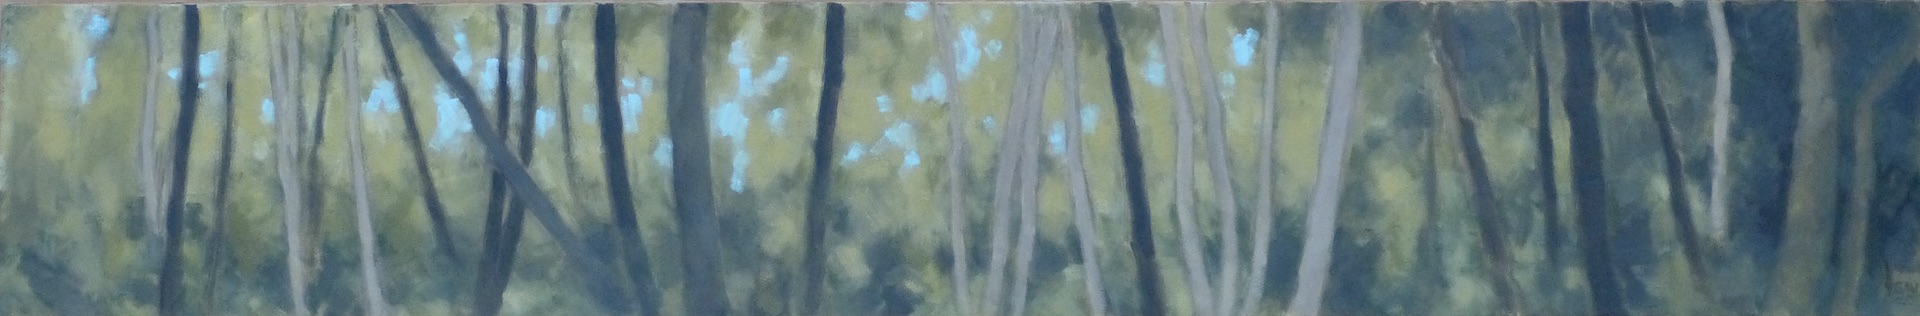 "2nd grove of trees --10x60"".  2020"